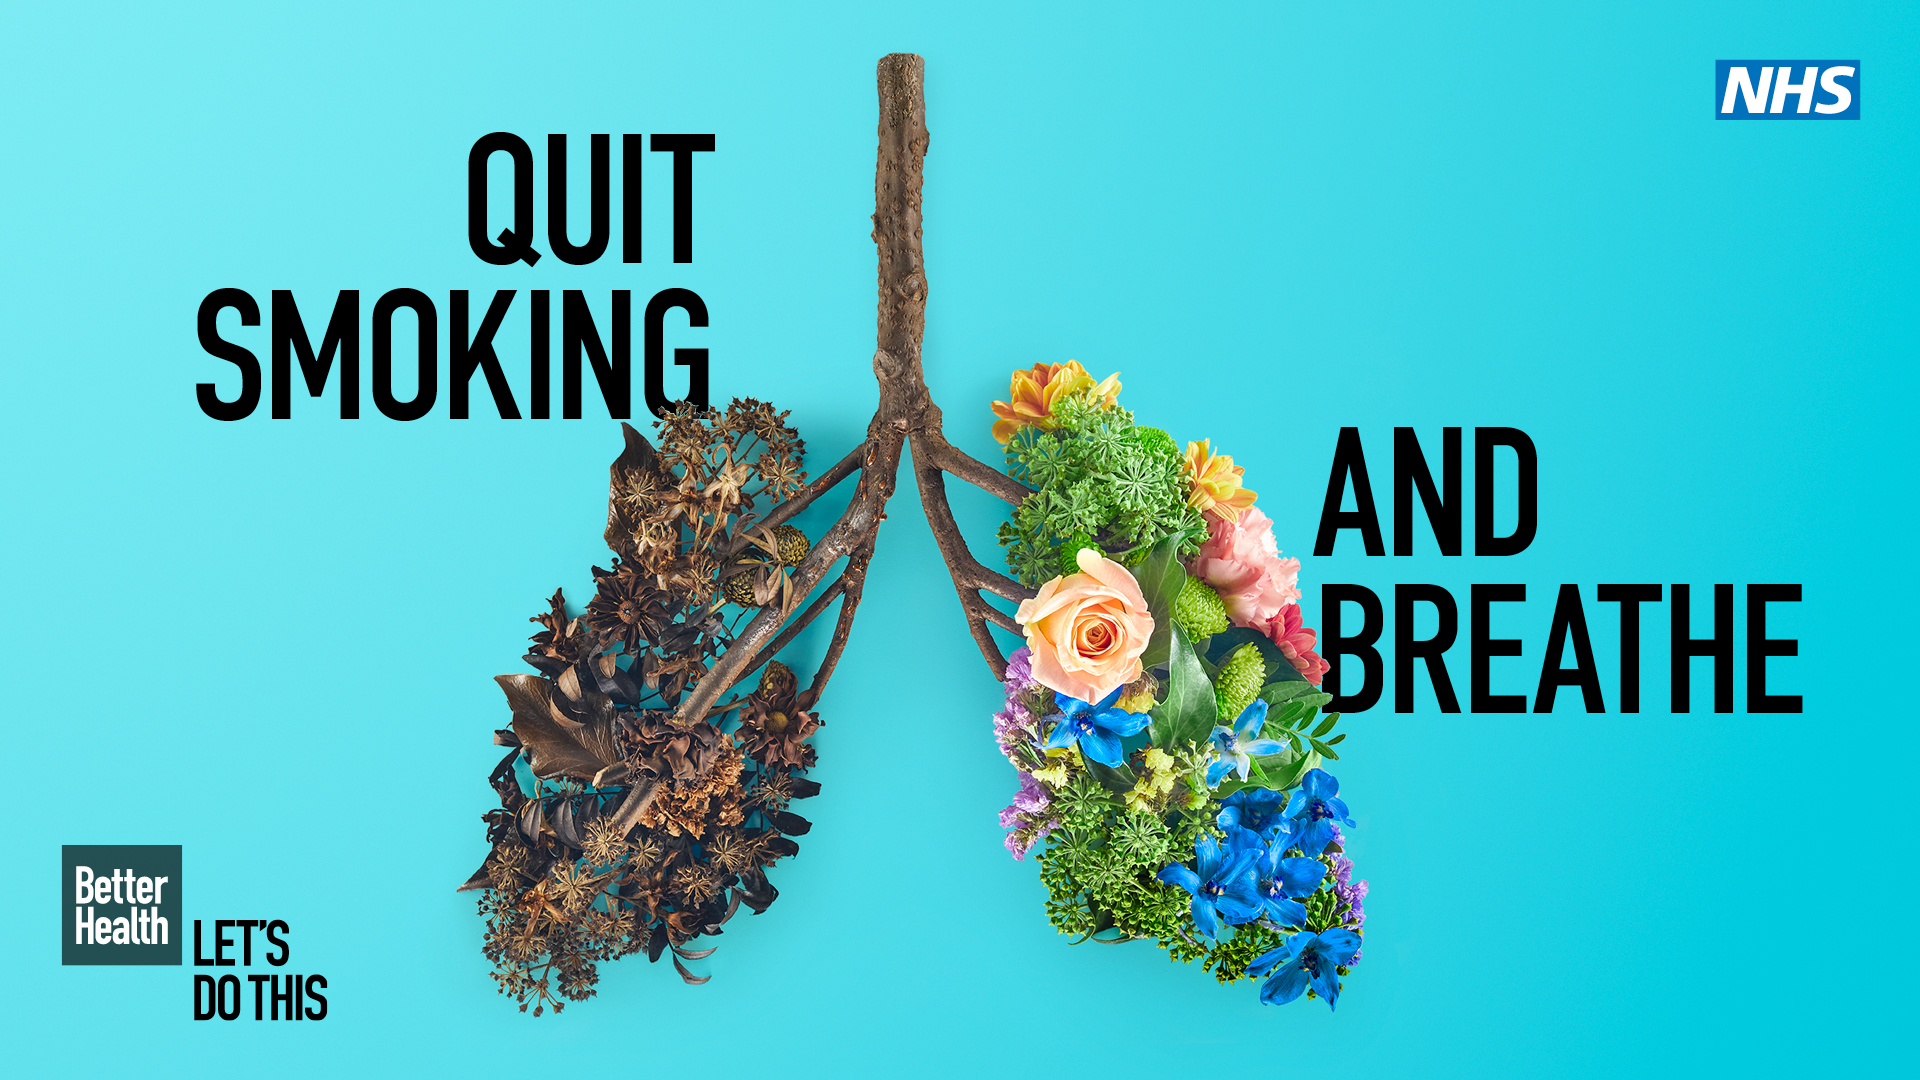 """""""Quite smoking and breath"""" - image show plants in the shape of lungs"""